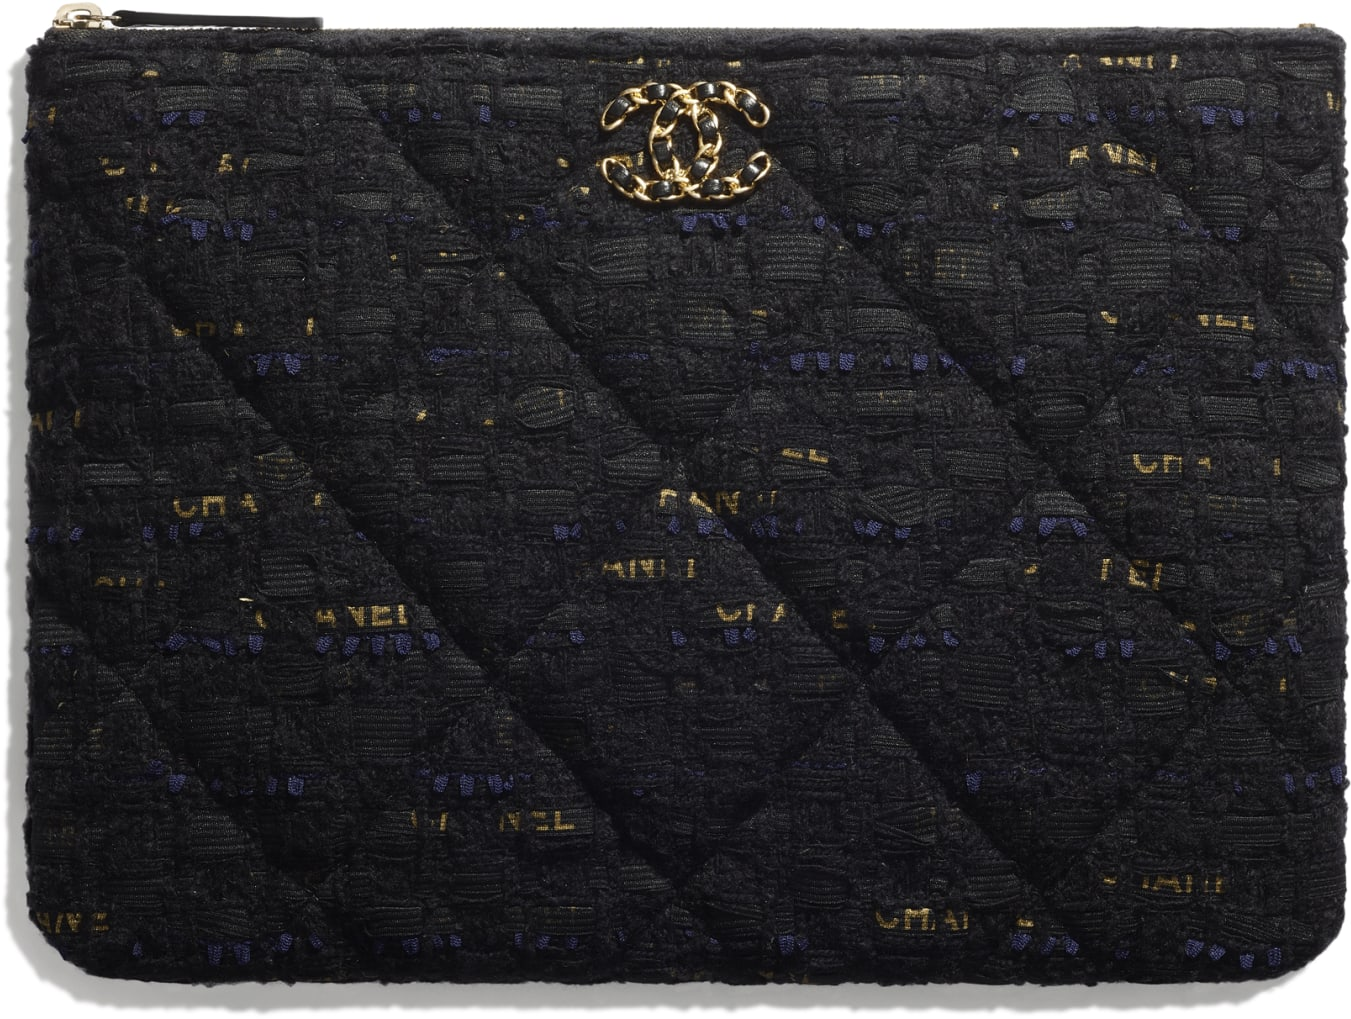 CHANEL 19 Pouch